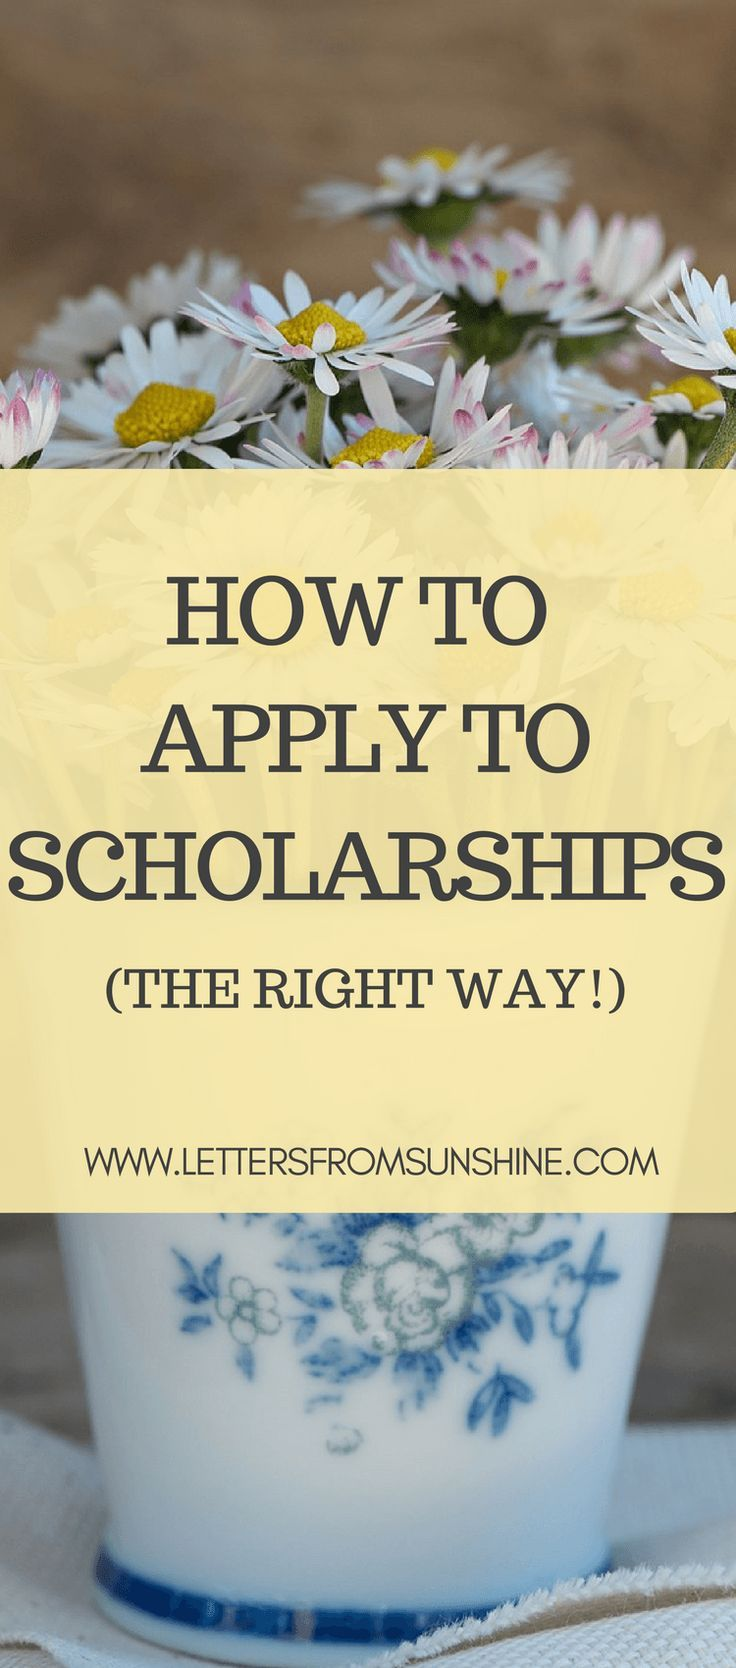 How to Apply for Scholarships (the right way!) | There are plenty of scholarships out there to help students fund their college education. This post covers how to apply to them the right way.